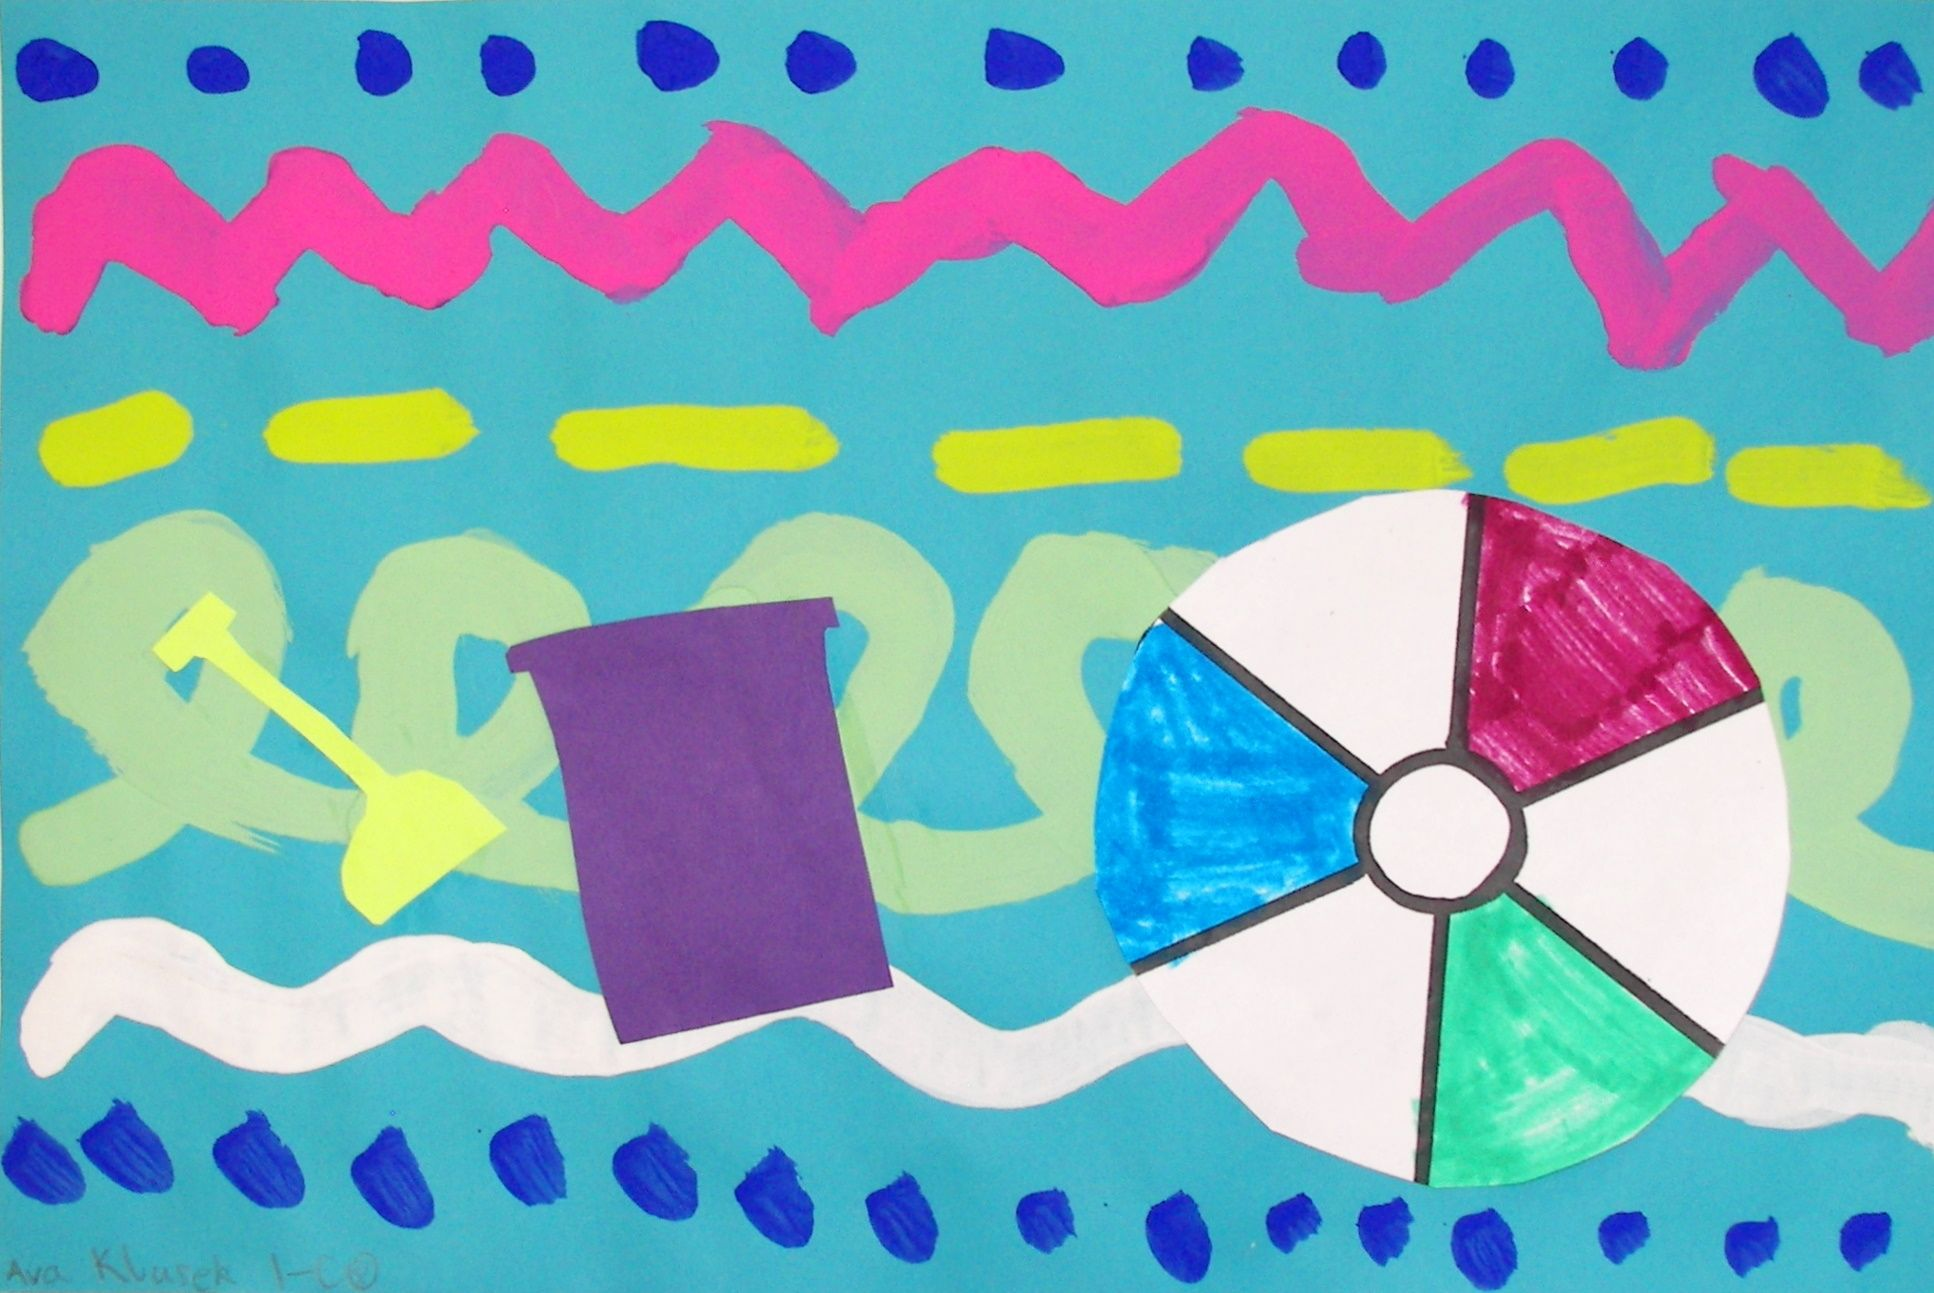 Beach towel design. Choice of colour, lines and patterns, add beach ...